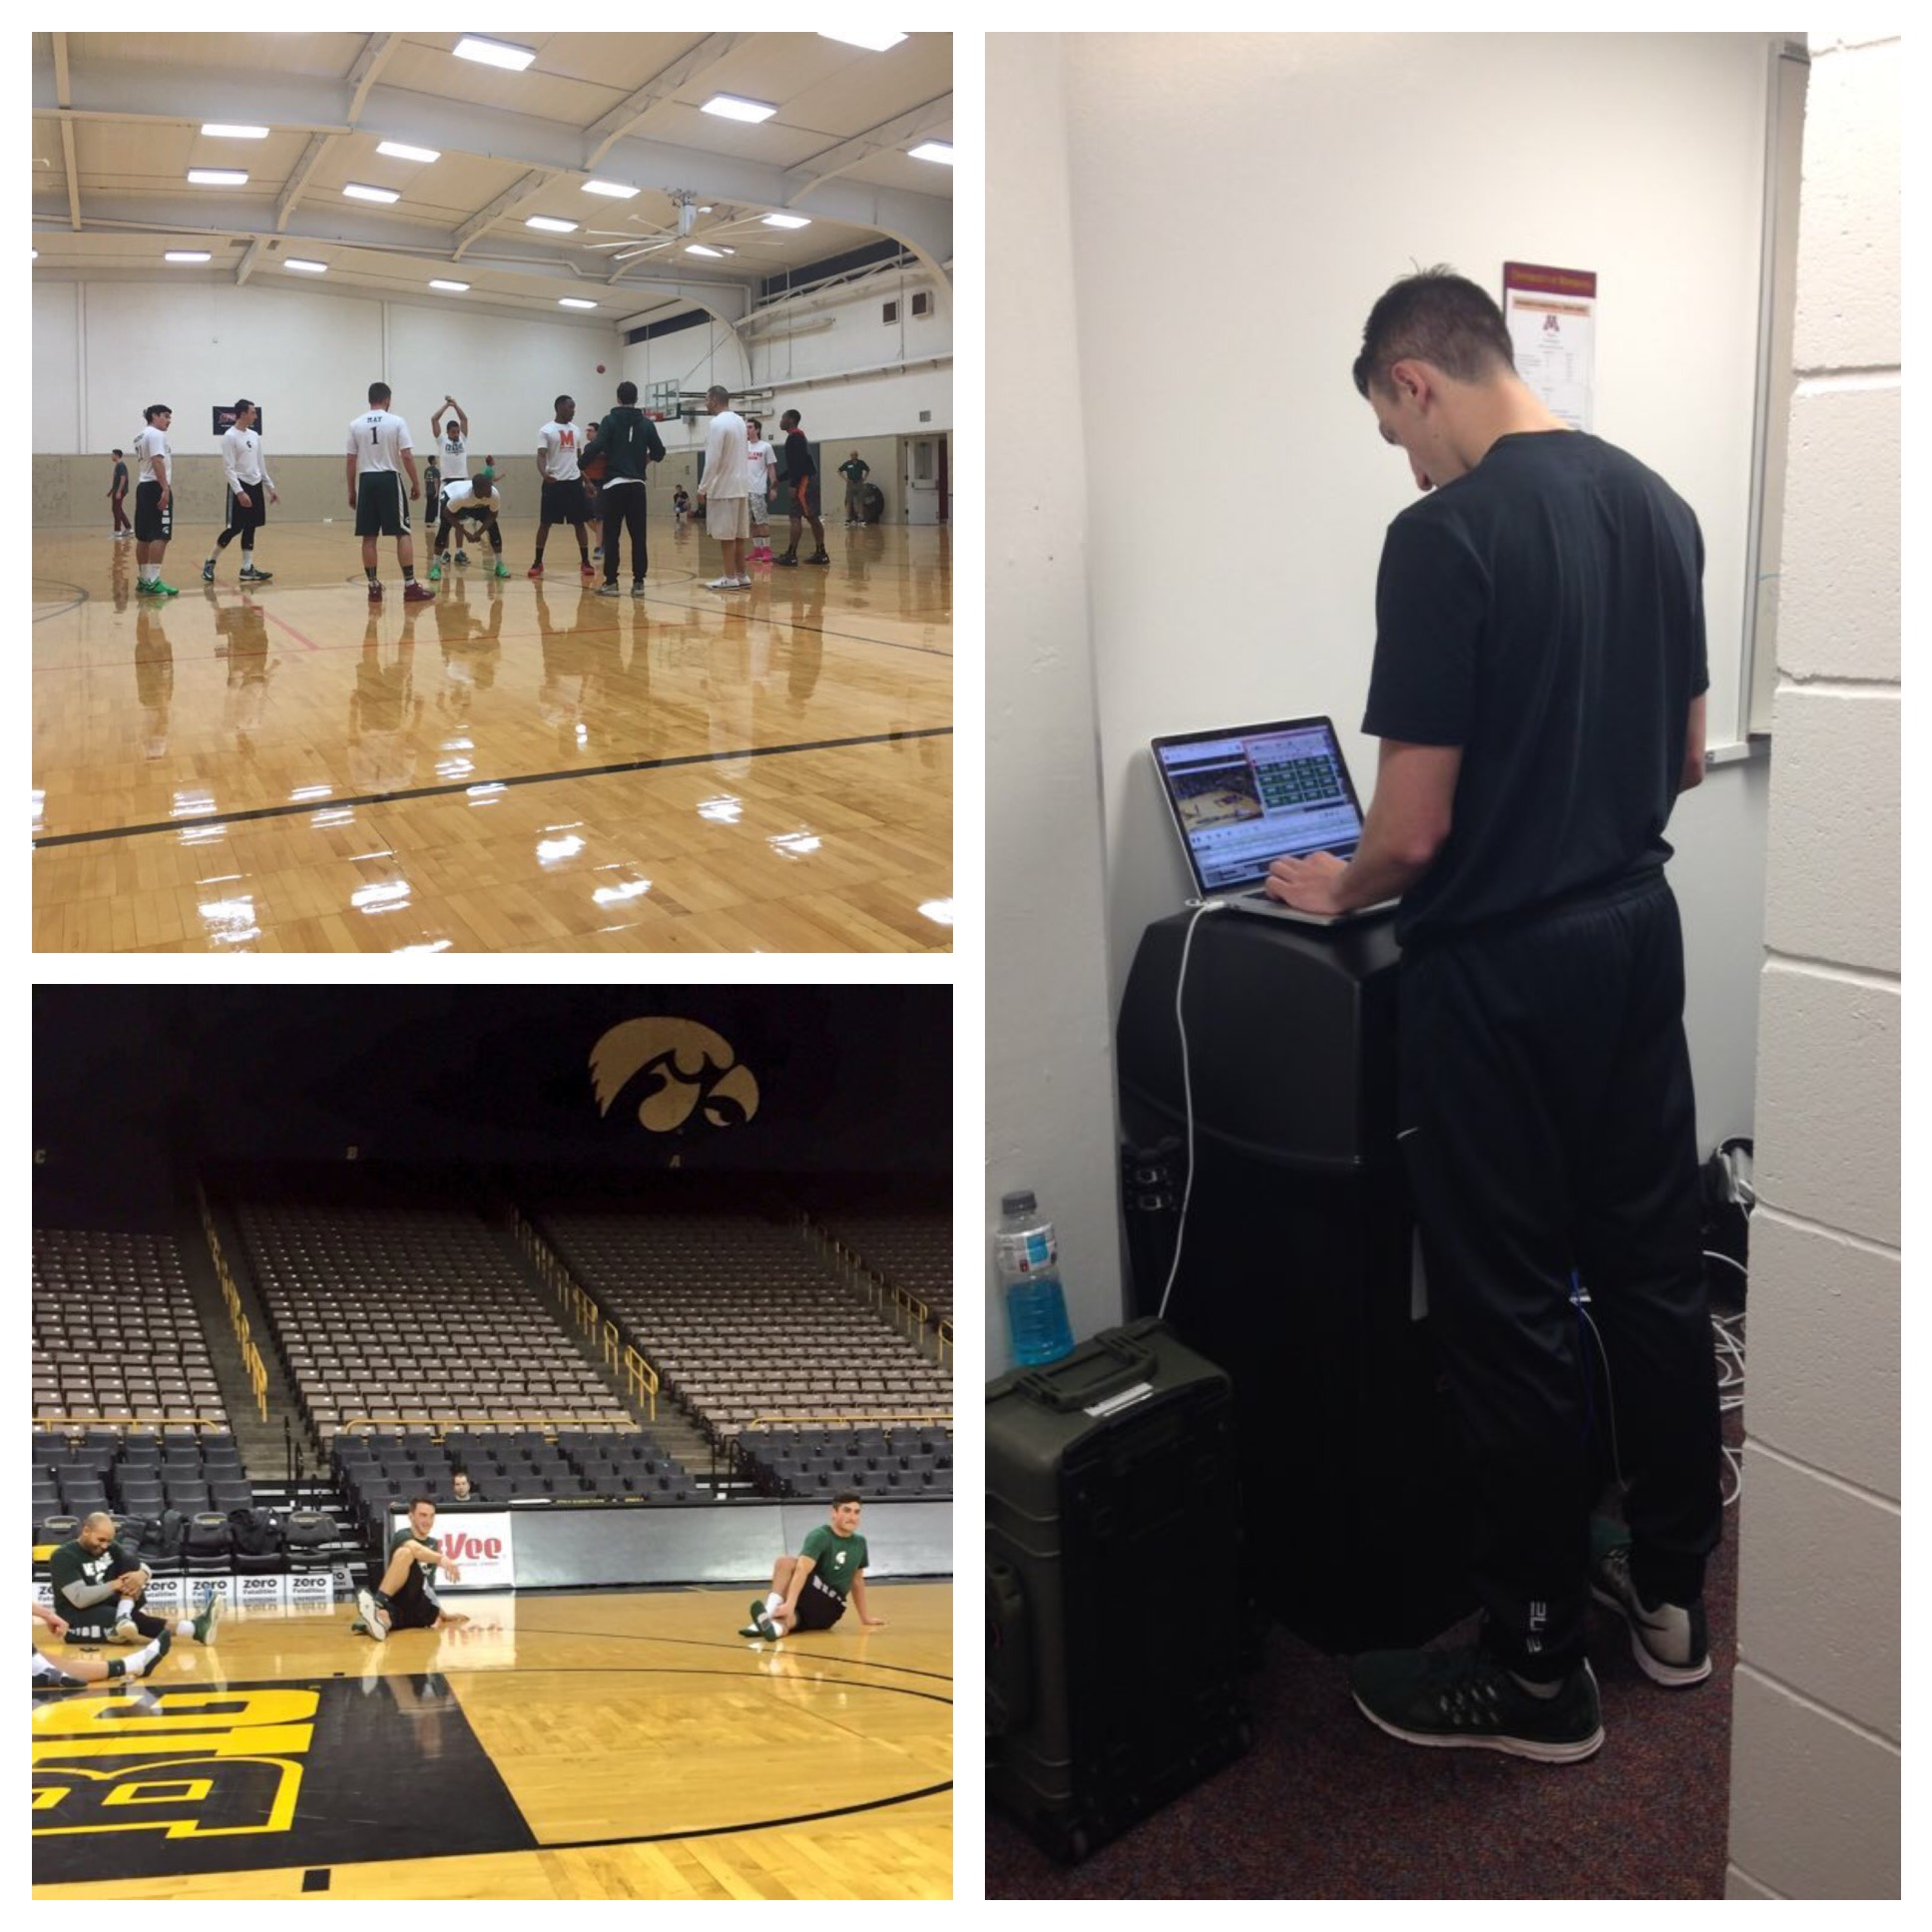 (Top left) - MSU vs. Maryland, #1 is Ian; (Bottom left) - MSU postgame stretch at Iowa; (right) - Andrew Novak using a trash can as a prop to input scores.